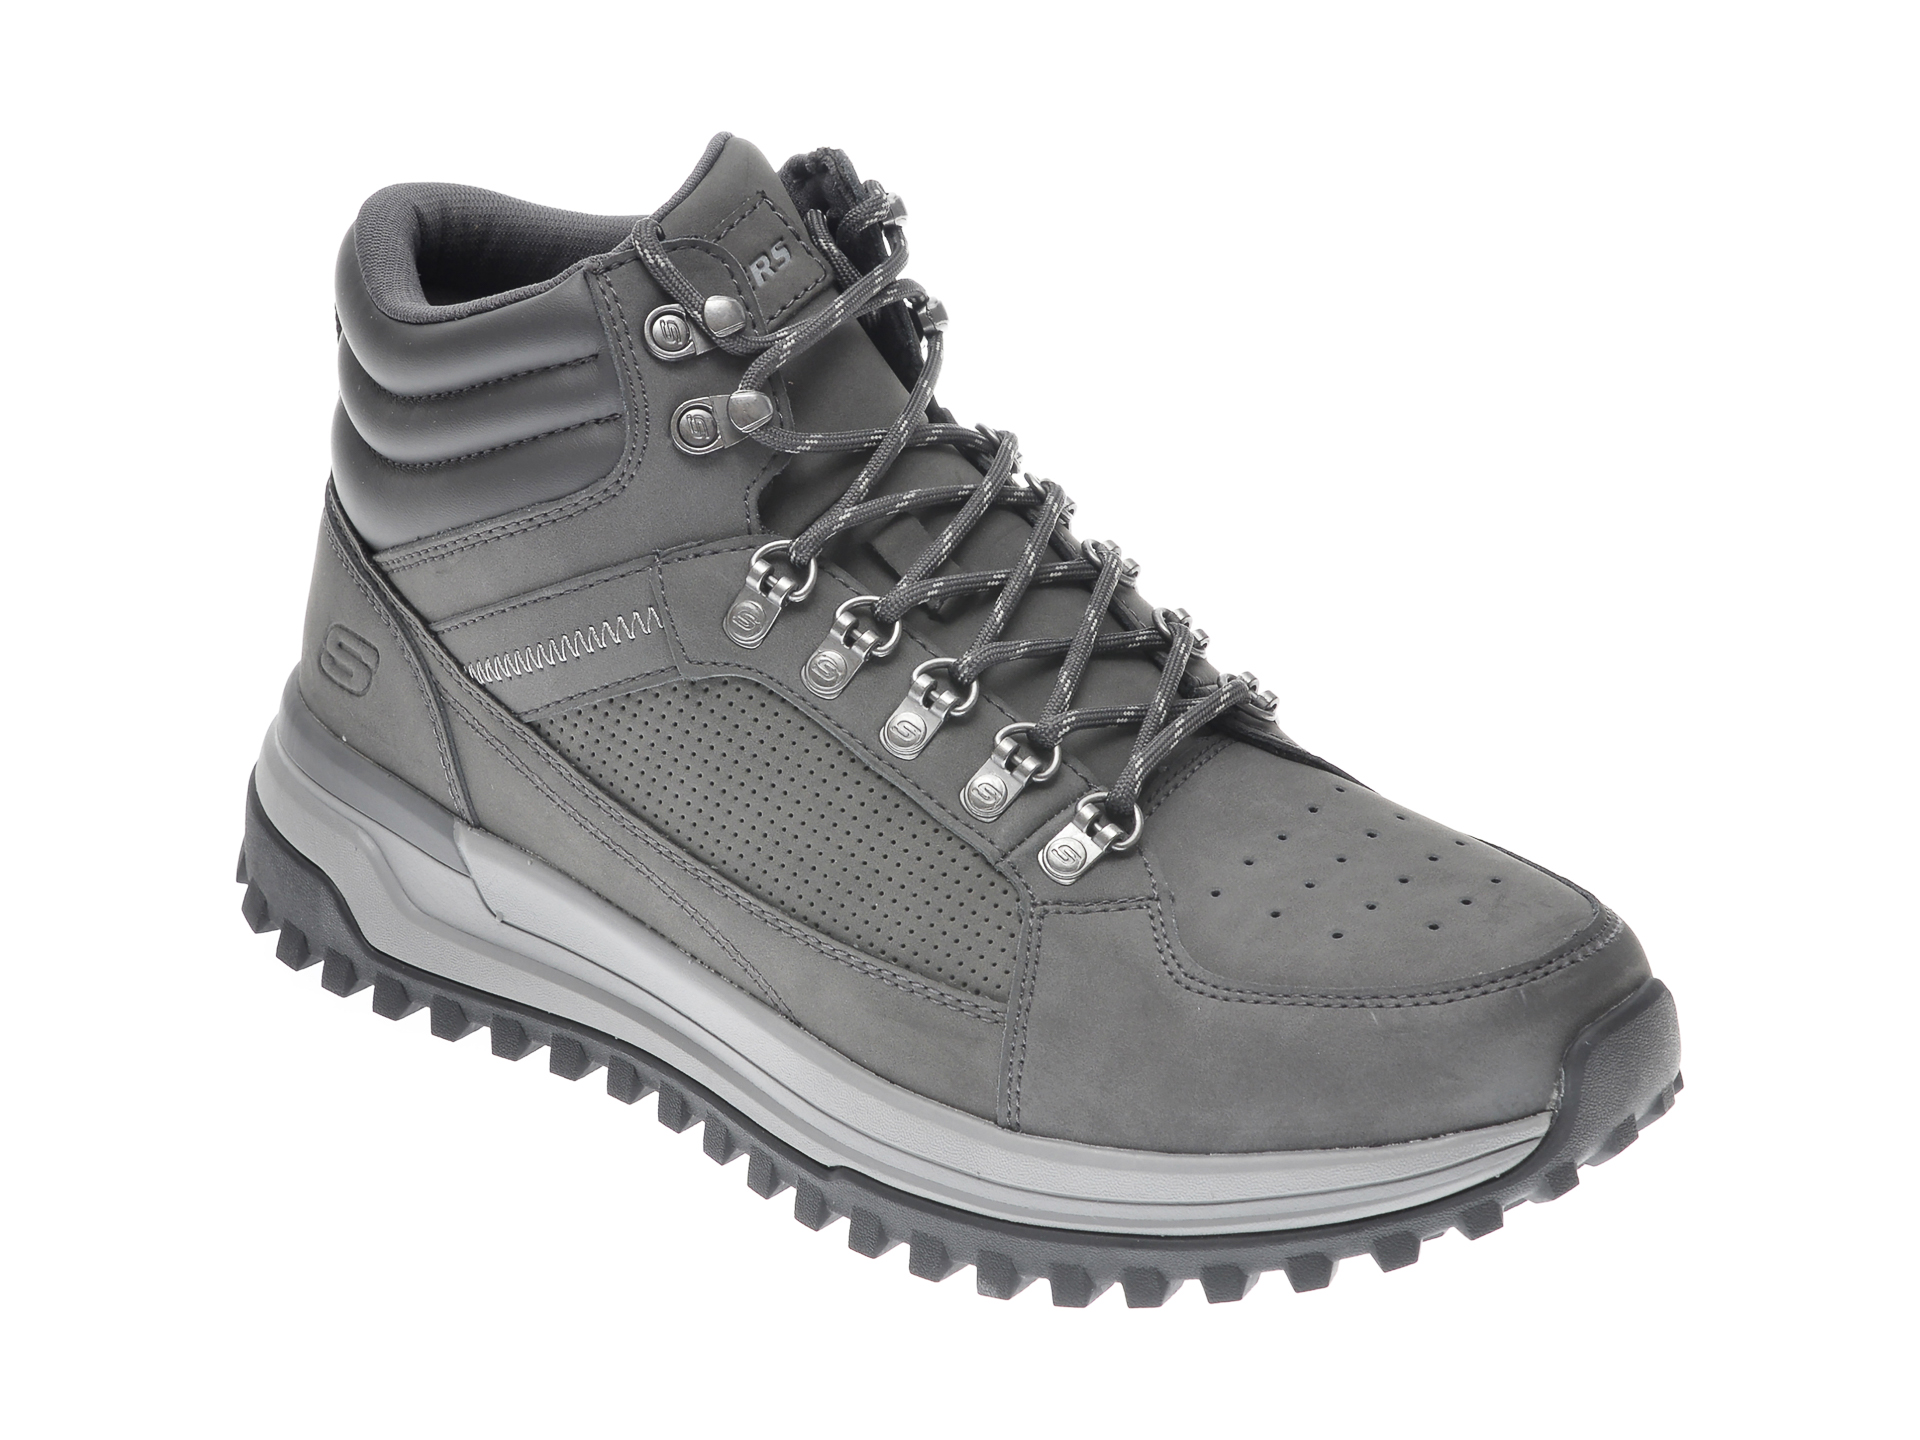 Ghete SKECHERS gri, 210152, din piele naturala imagine